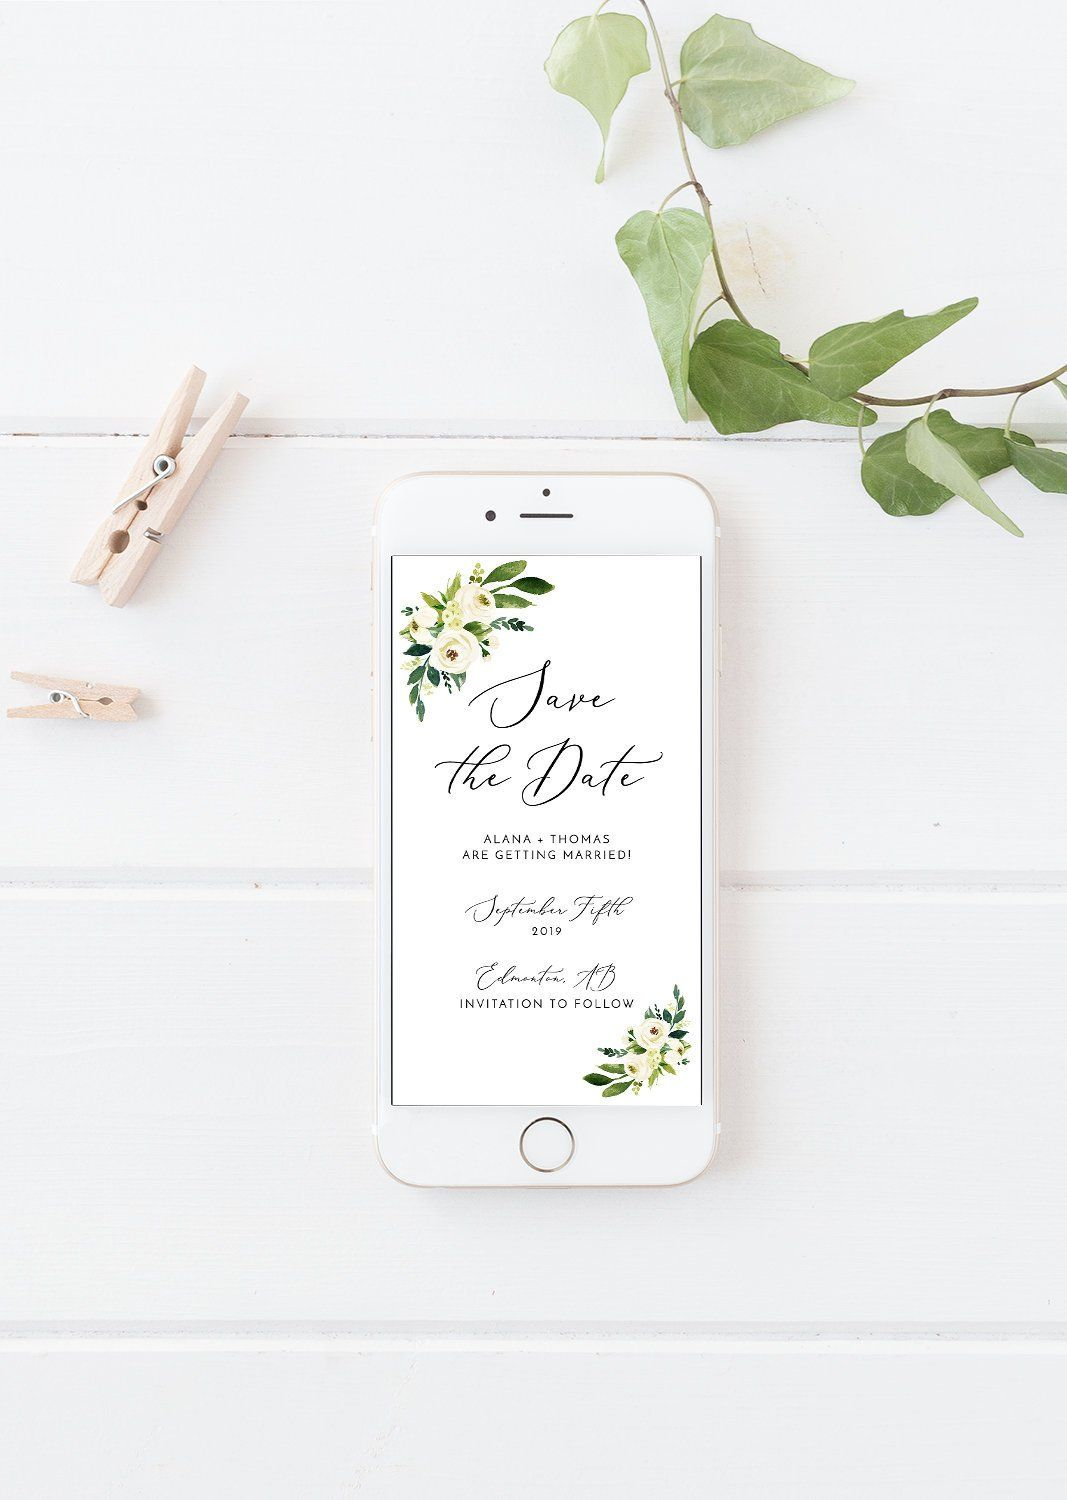 Electronic save the date invitation white roses